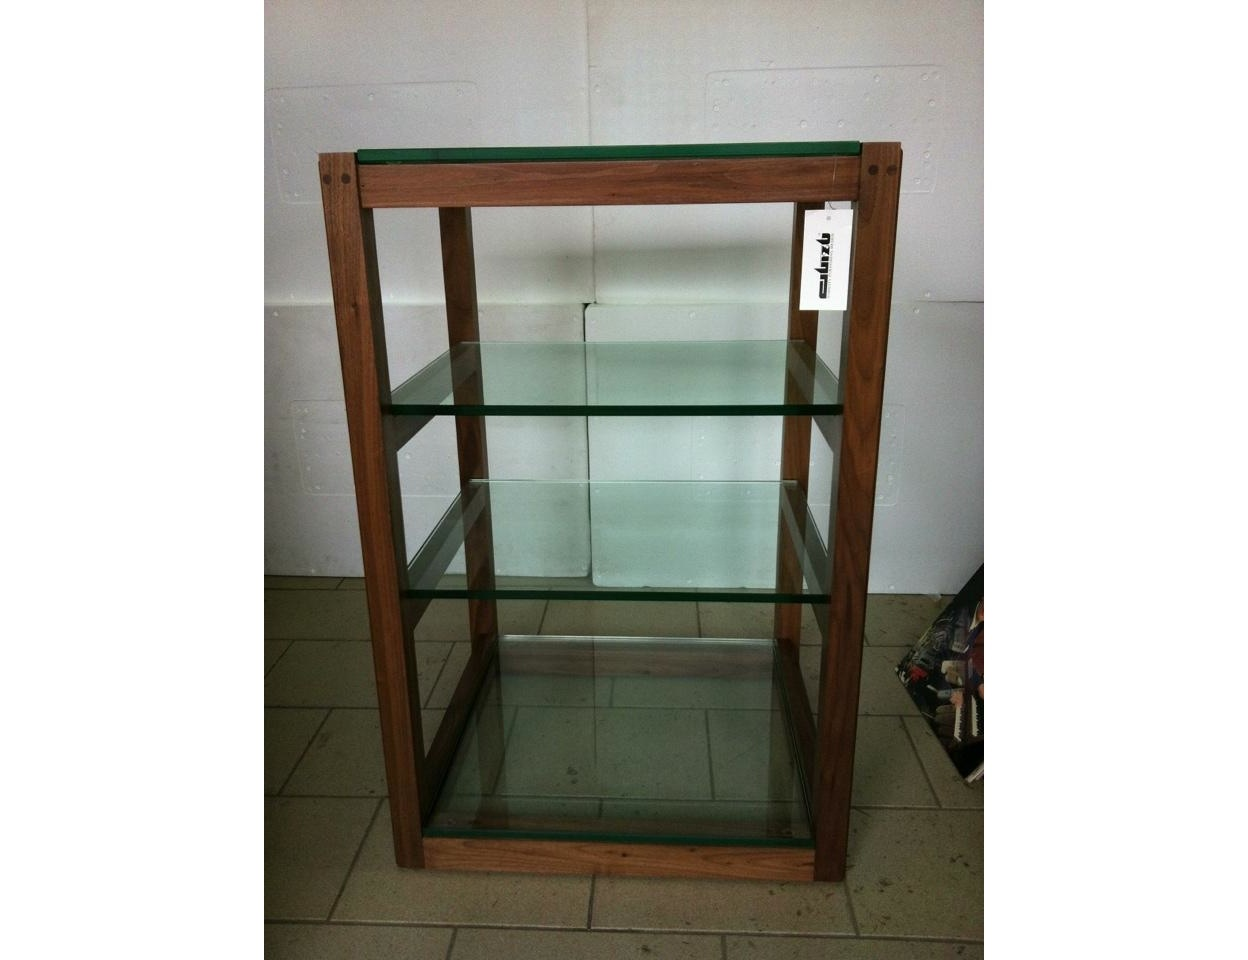 Guizu WUBP-4A Quadruple shelves with glasses